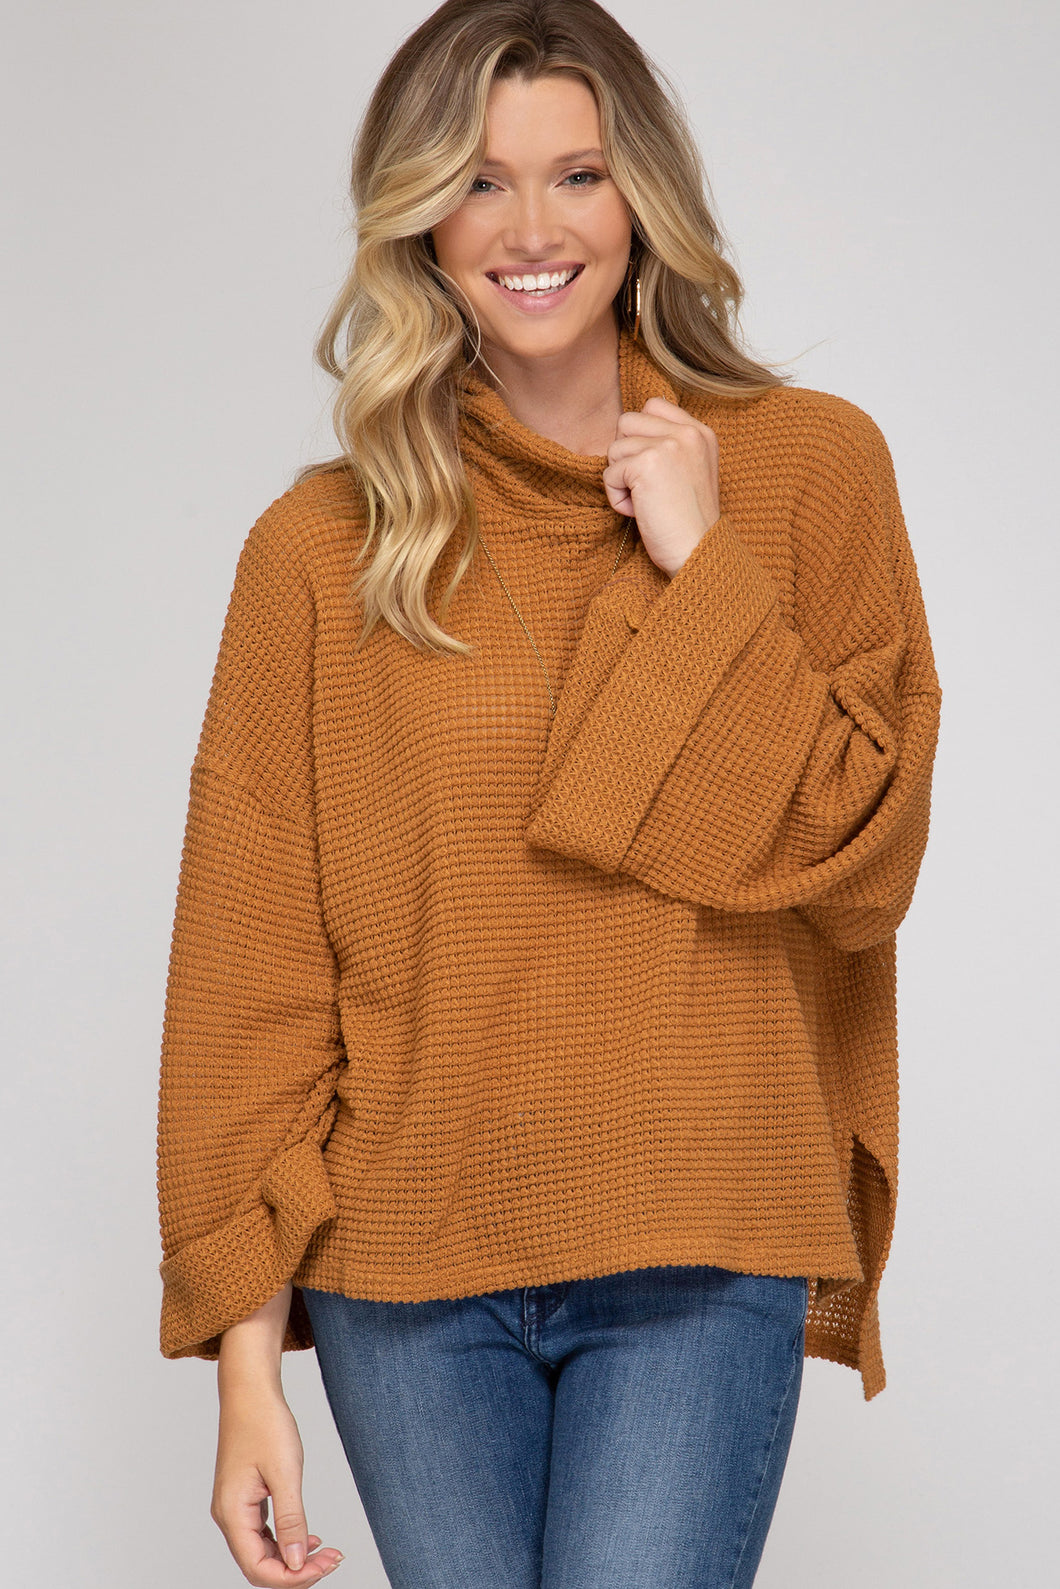 Caramel Cuff Sleeve Turtleneck Thermal Top